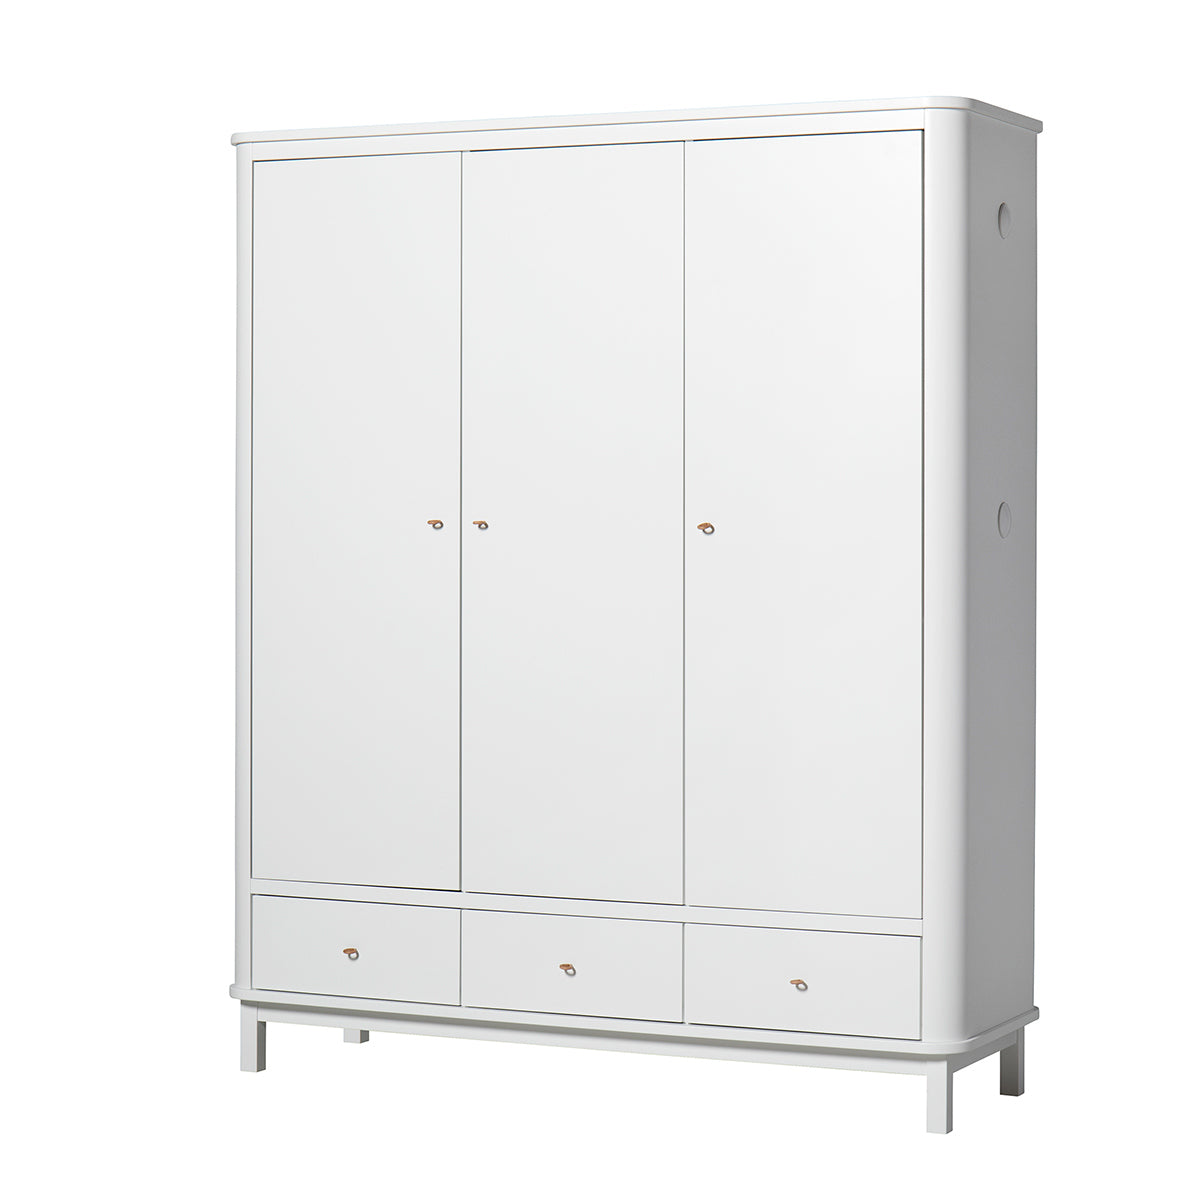 Oliver Furniture Kleiderschrank Wood Collection , 3-türig, weiss